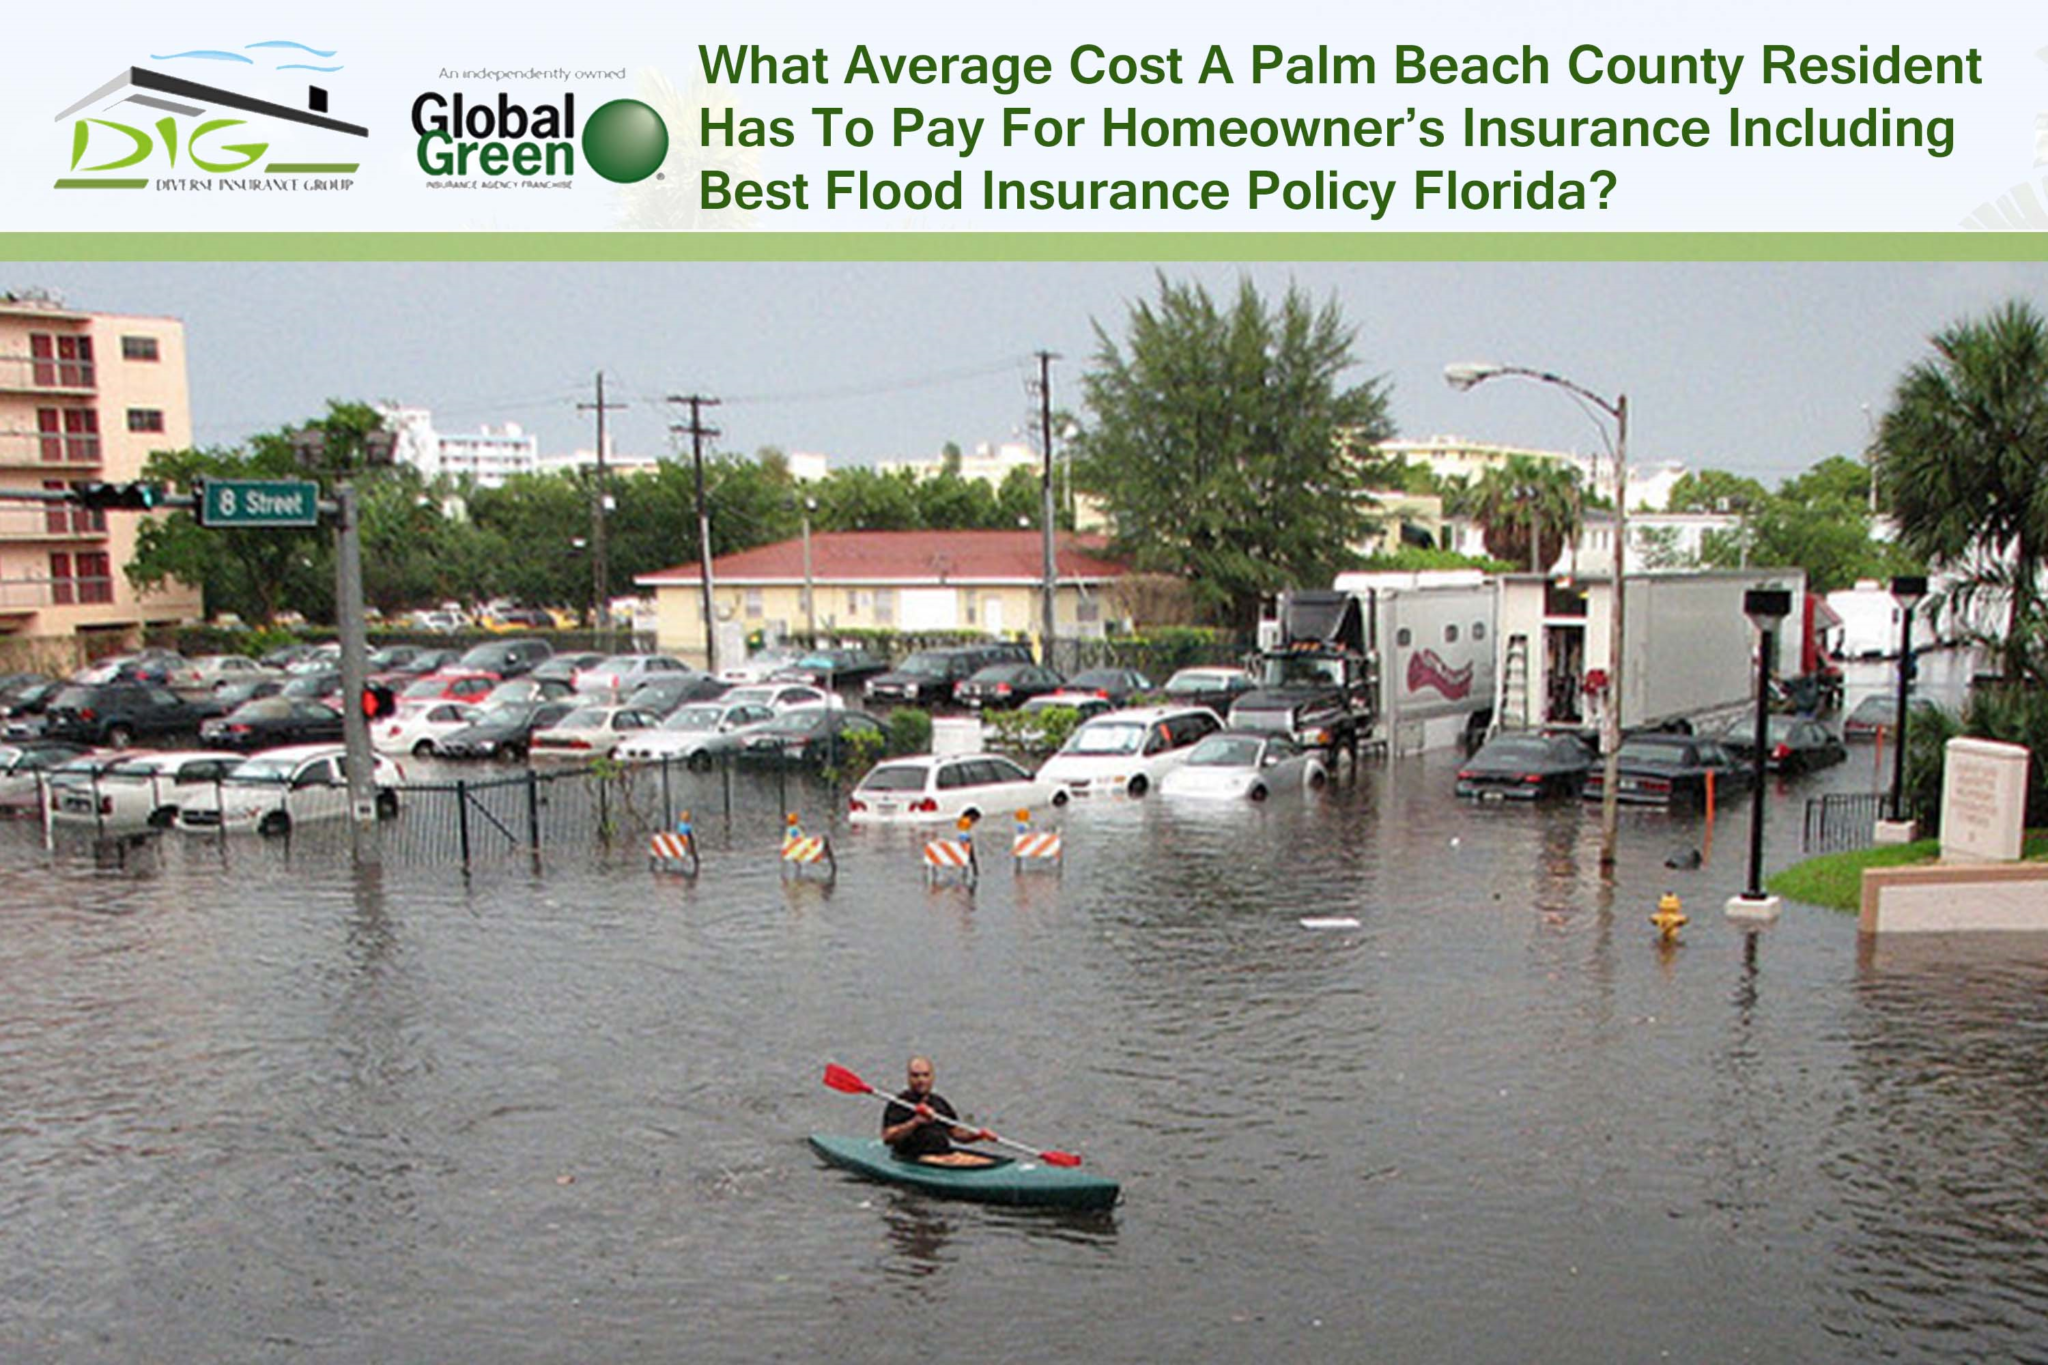 palm beach county resident best flood insurance policy florida. Black Bedroom Furniture Sets. Home Design Ideas